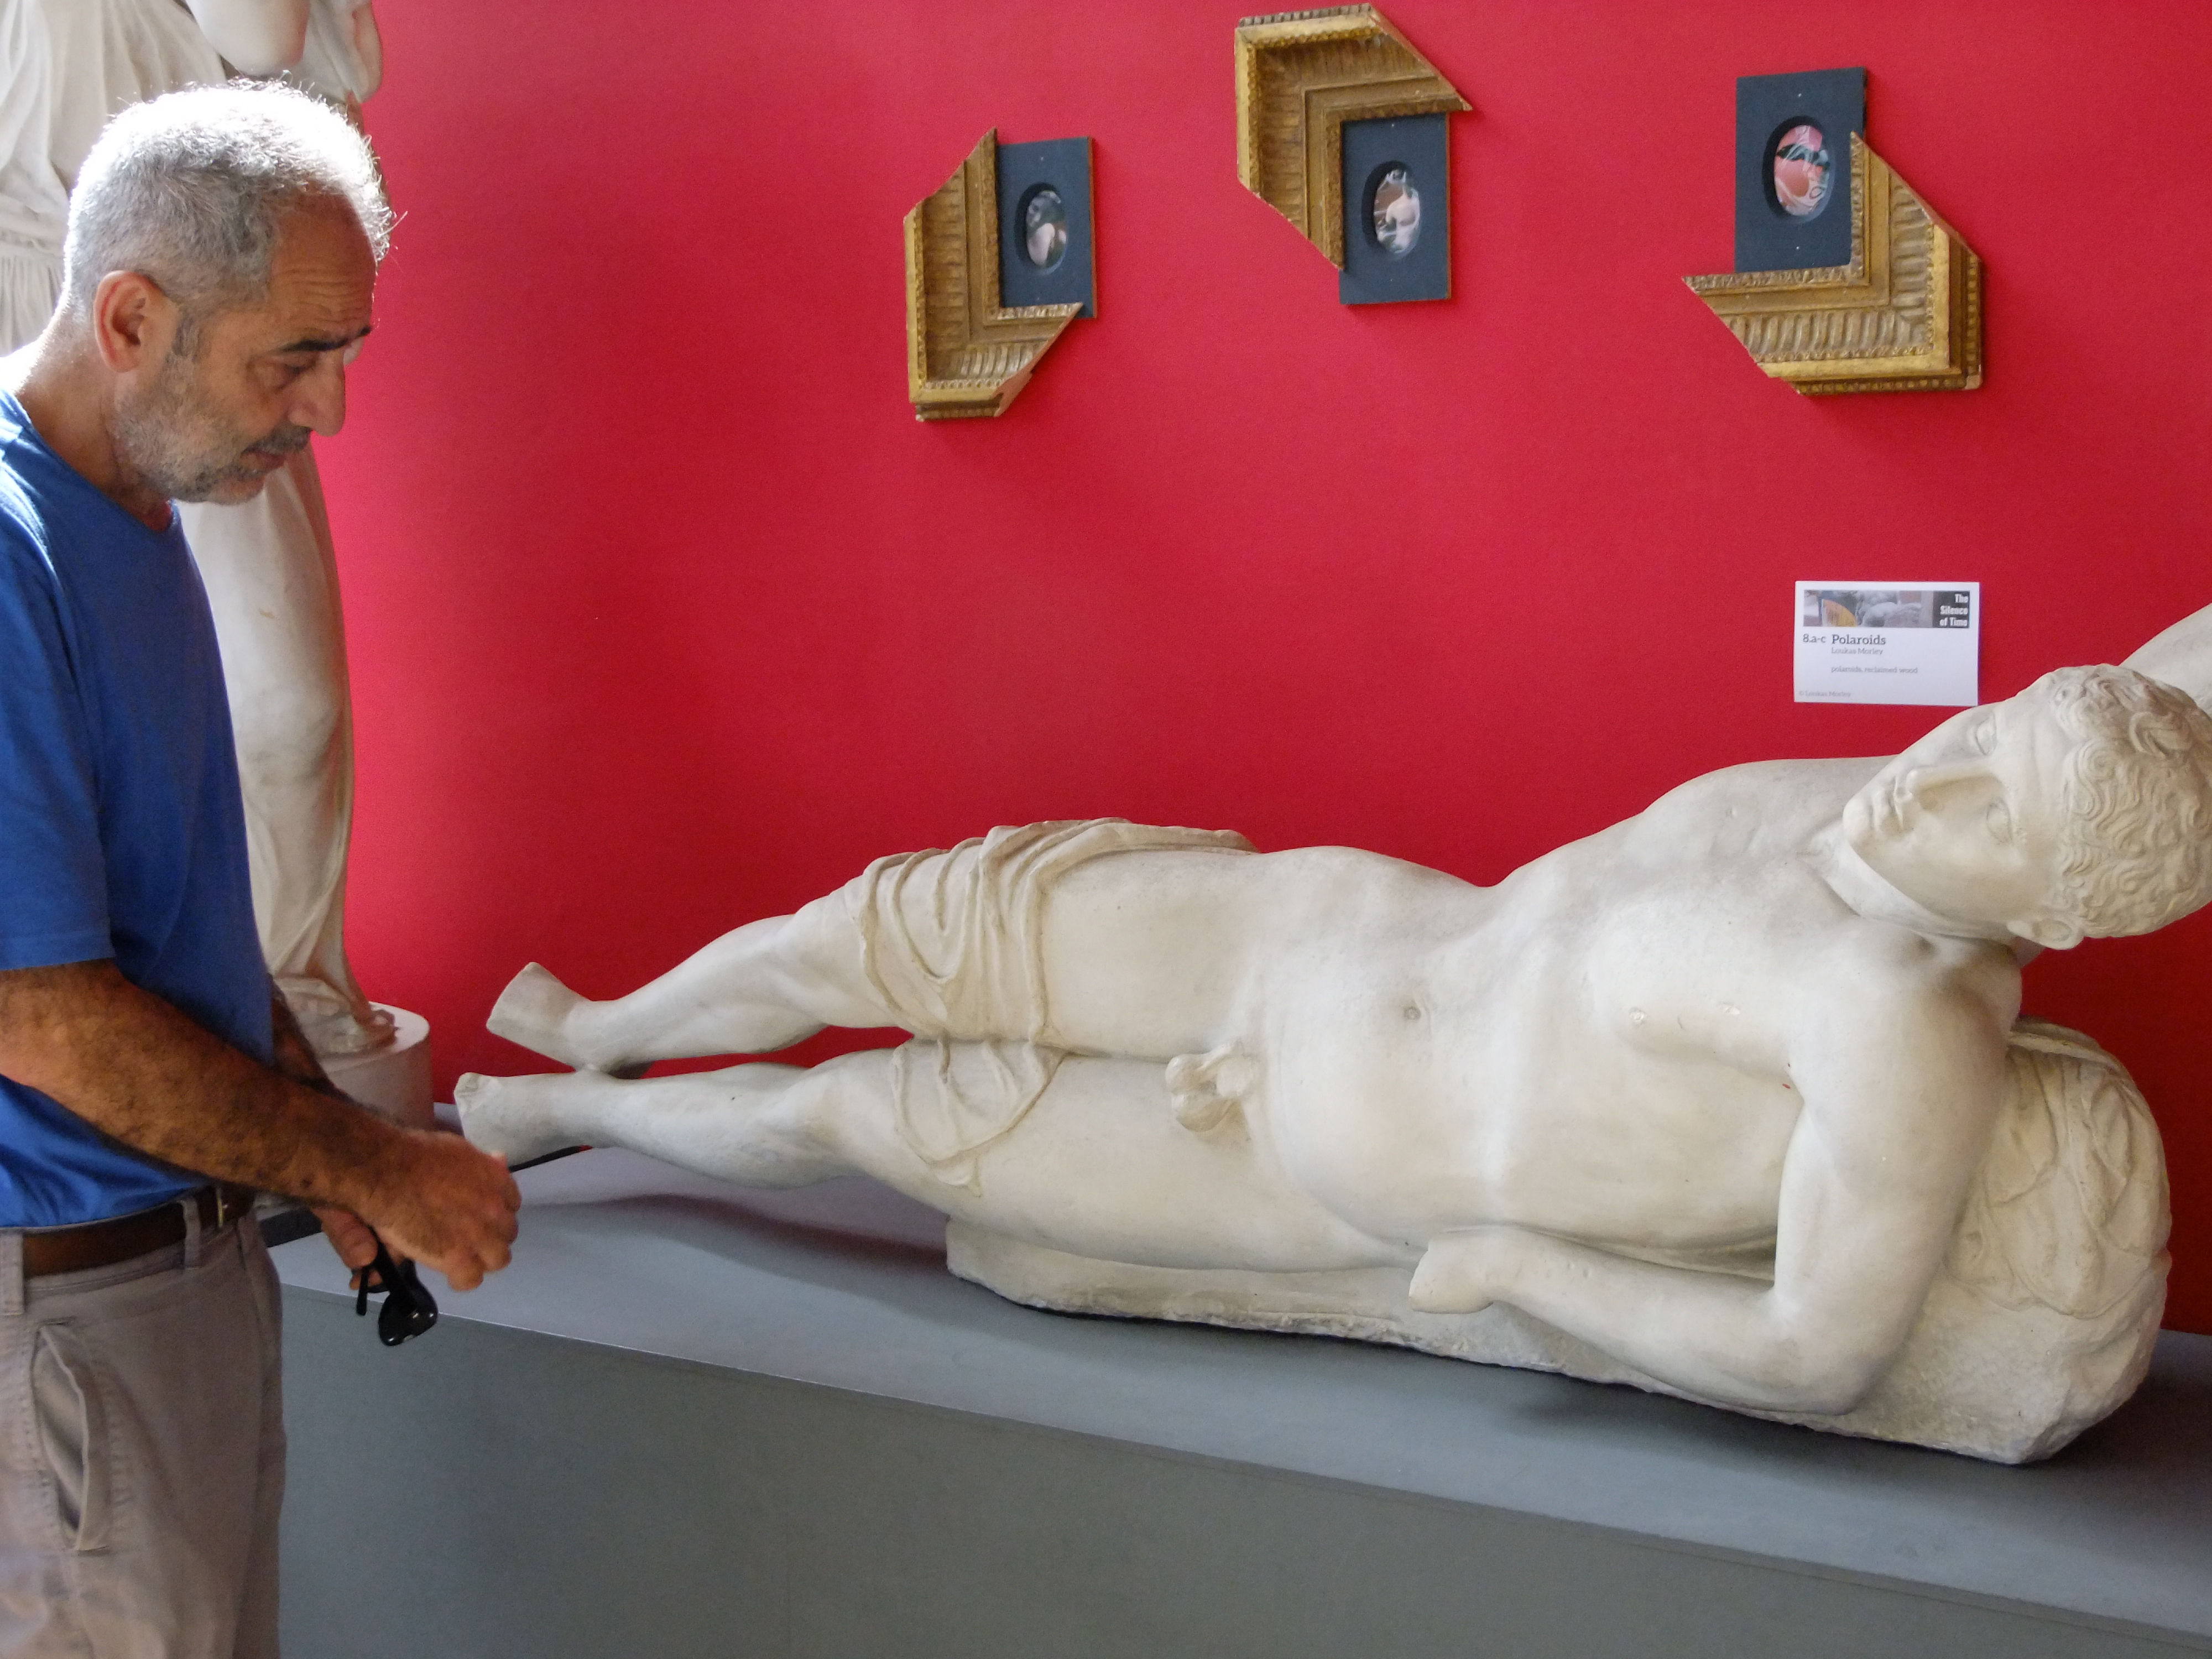 A Syrian man stands mournfully looking at a sculpture of reclining young man